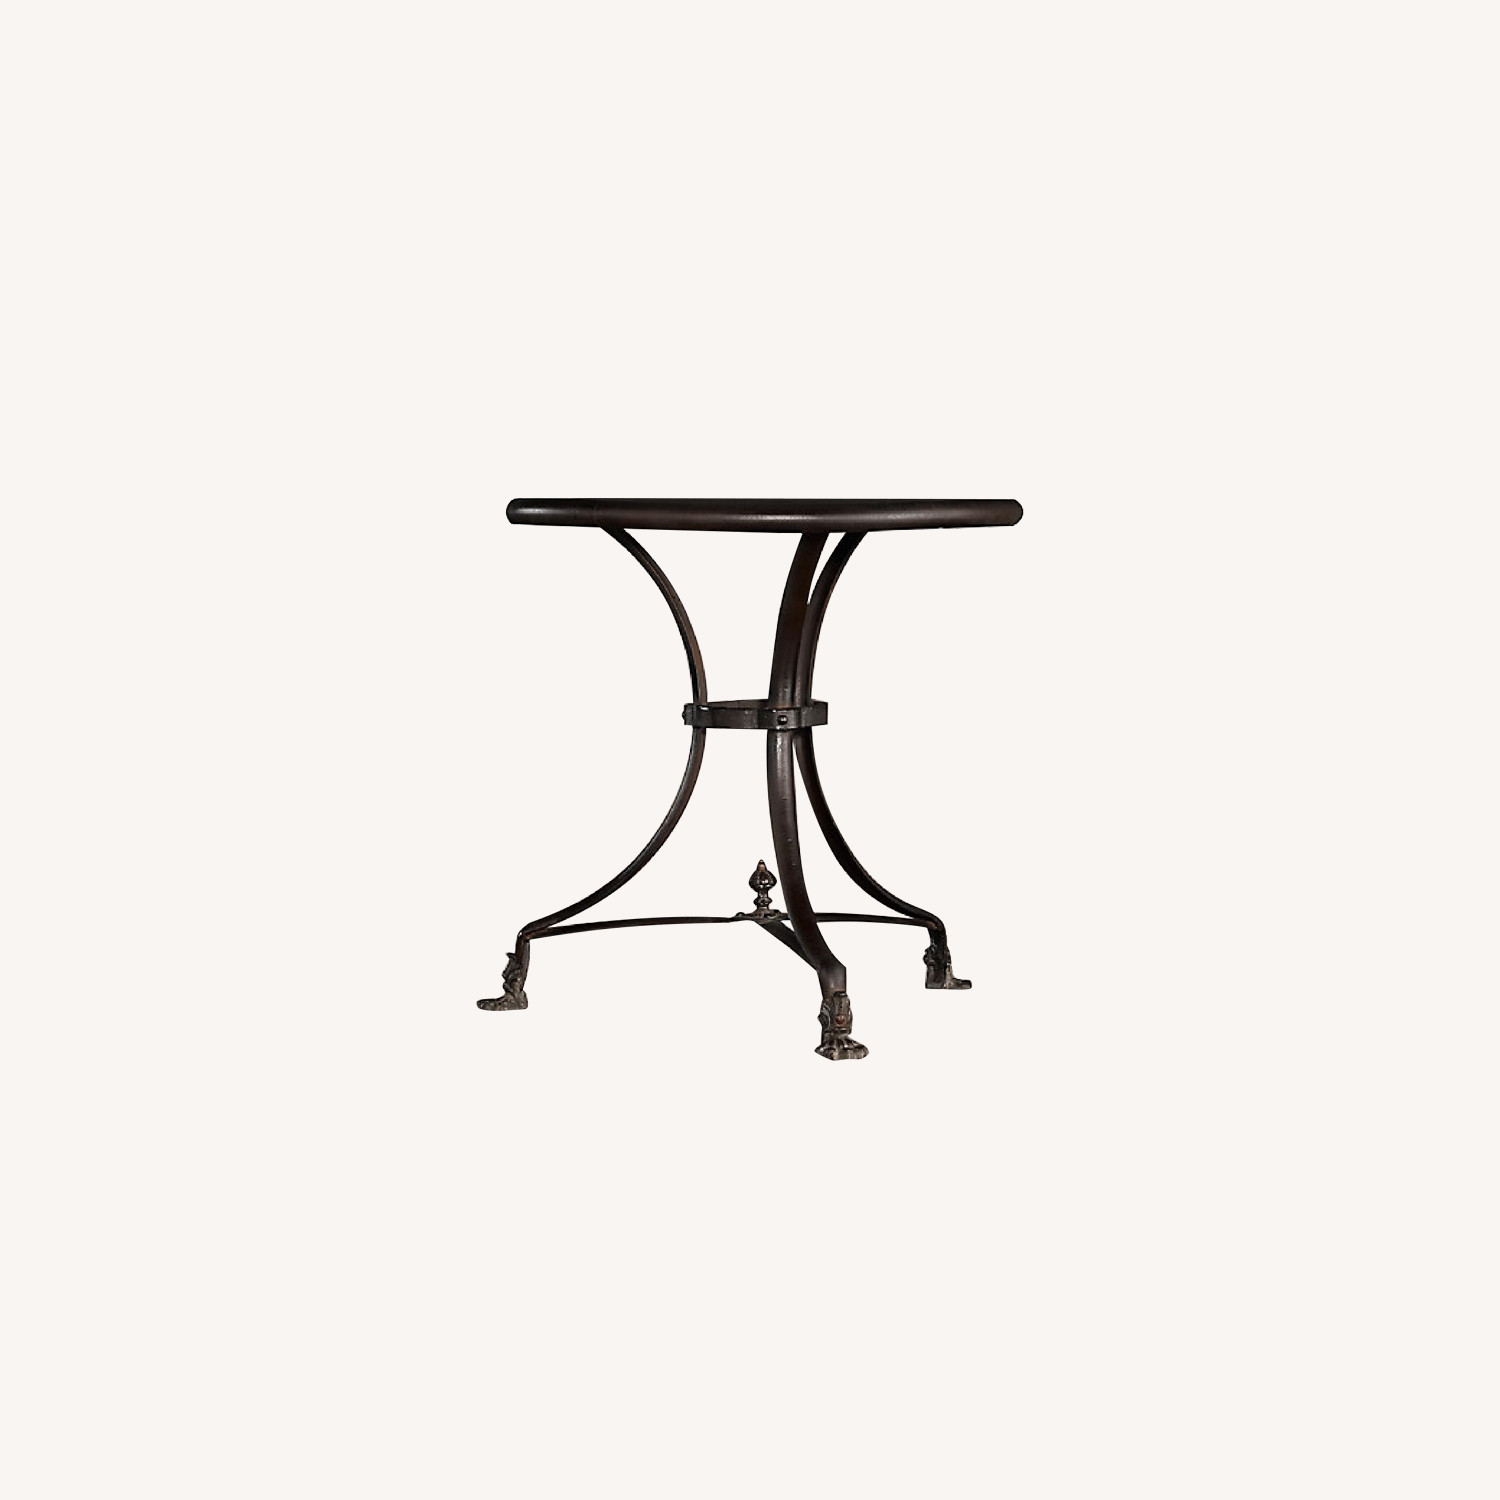 Restoration Hardware French Brasserie Lions Foot Table